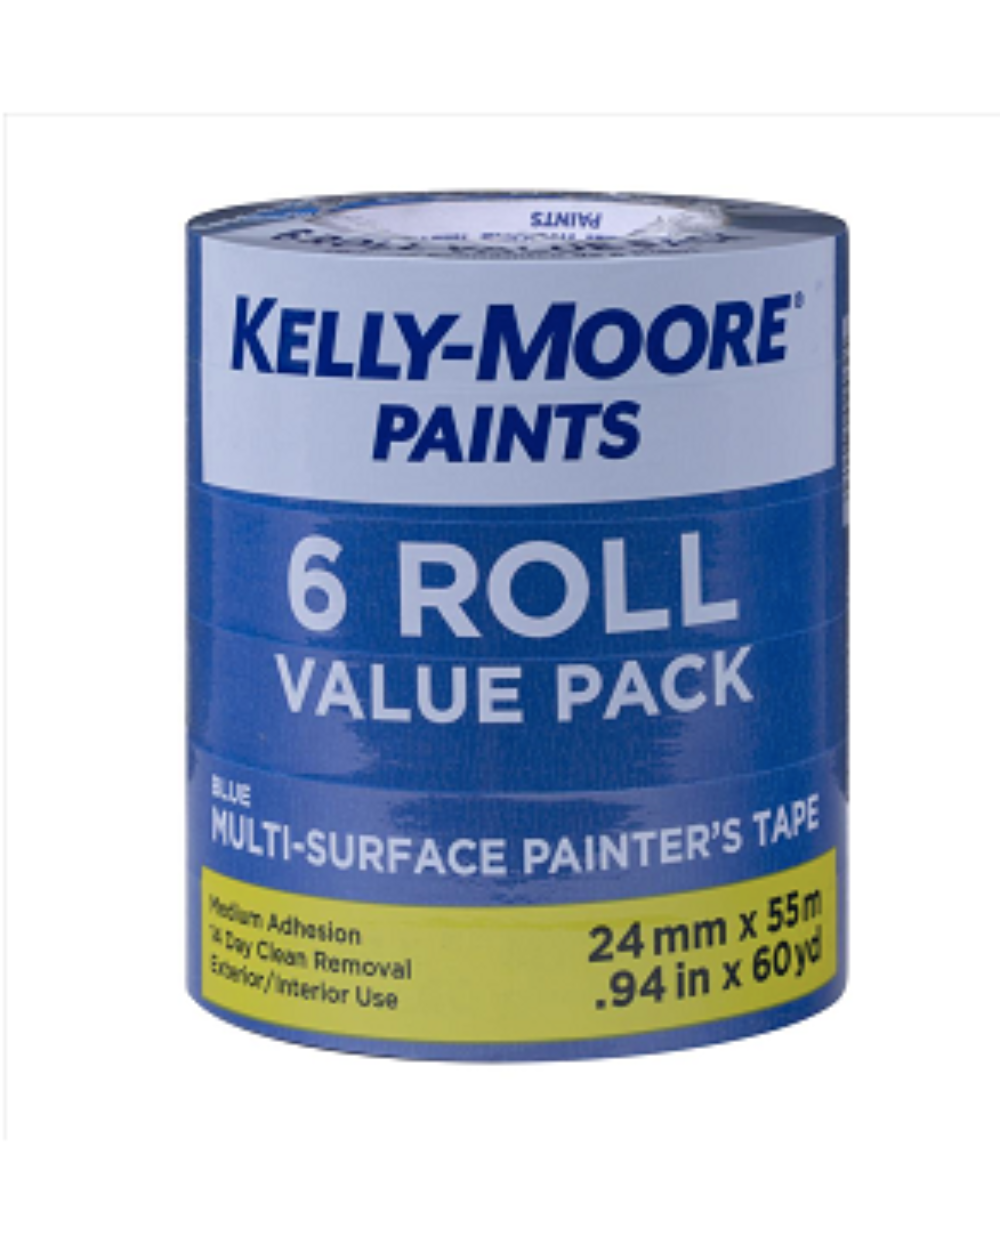 "1"" Multisurface Blue Tape 6 Pack, available at Kelly-Moore Paints for Contractors."